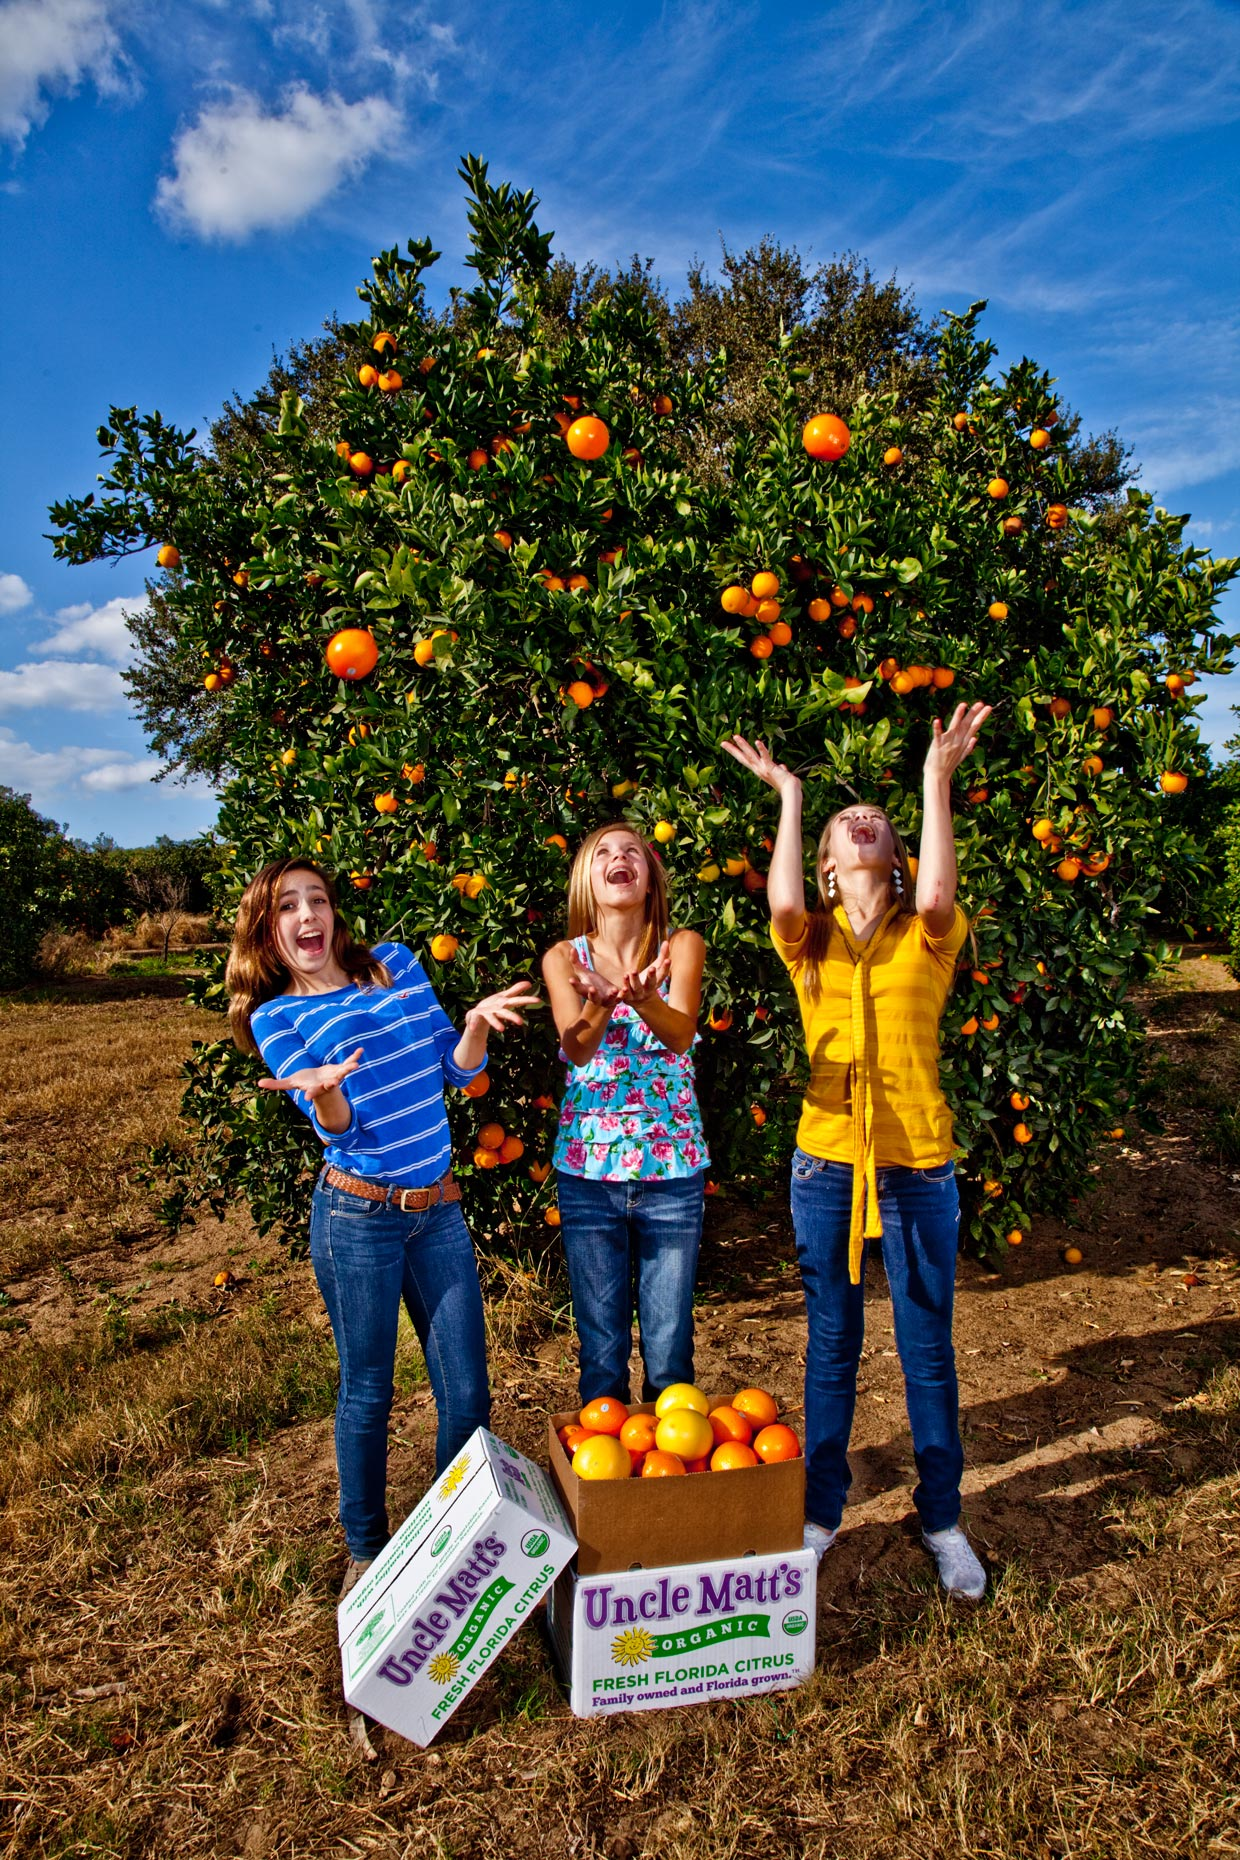 Lifestyle Photography | Girls juggling fresh florida oranges